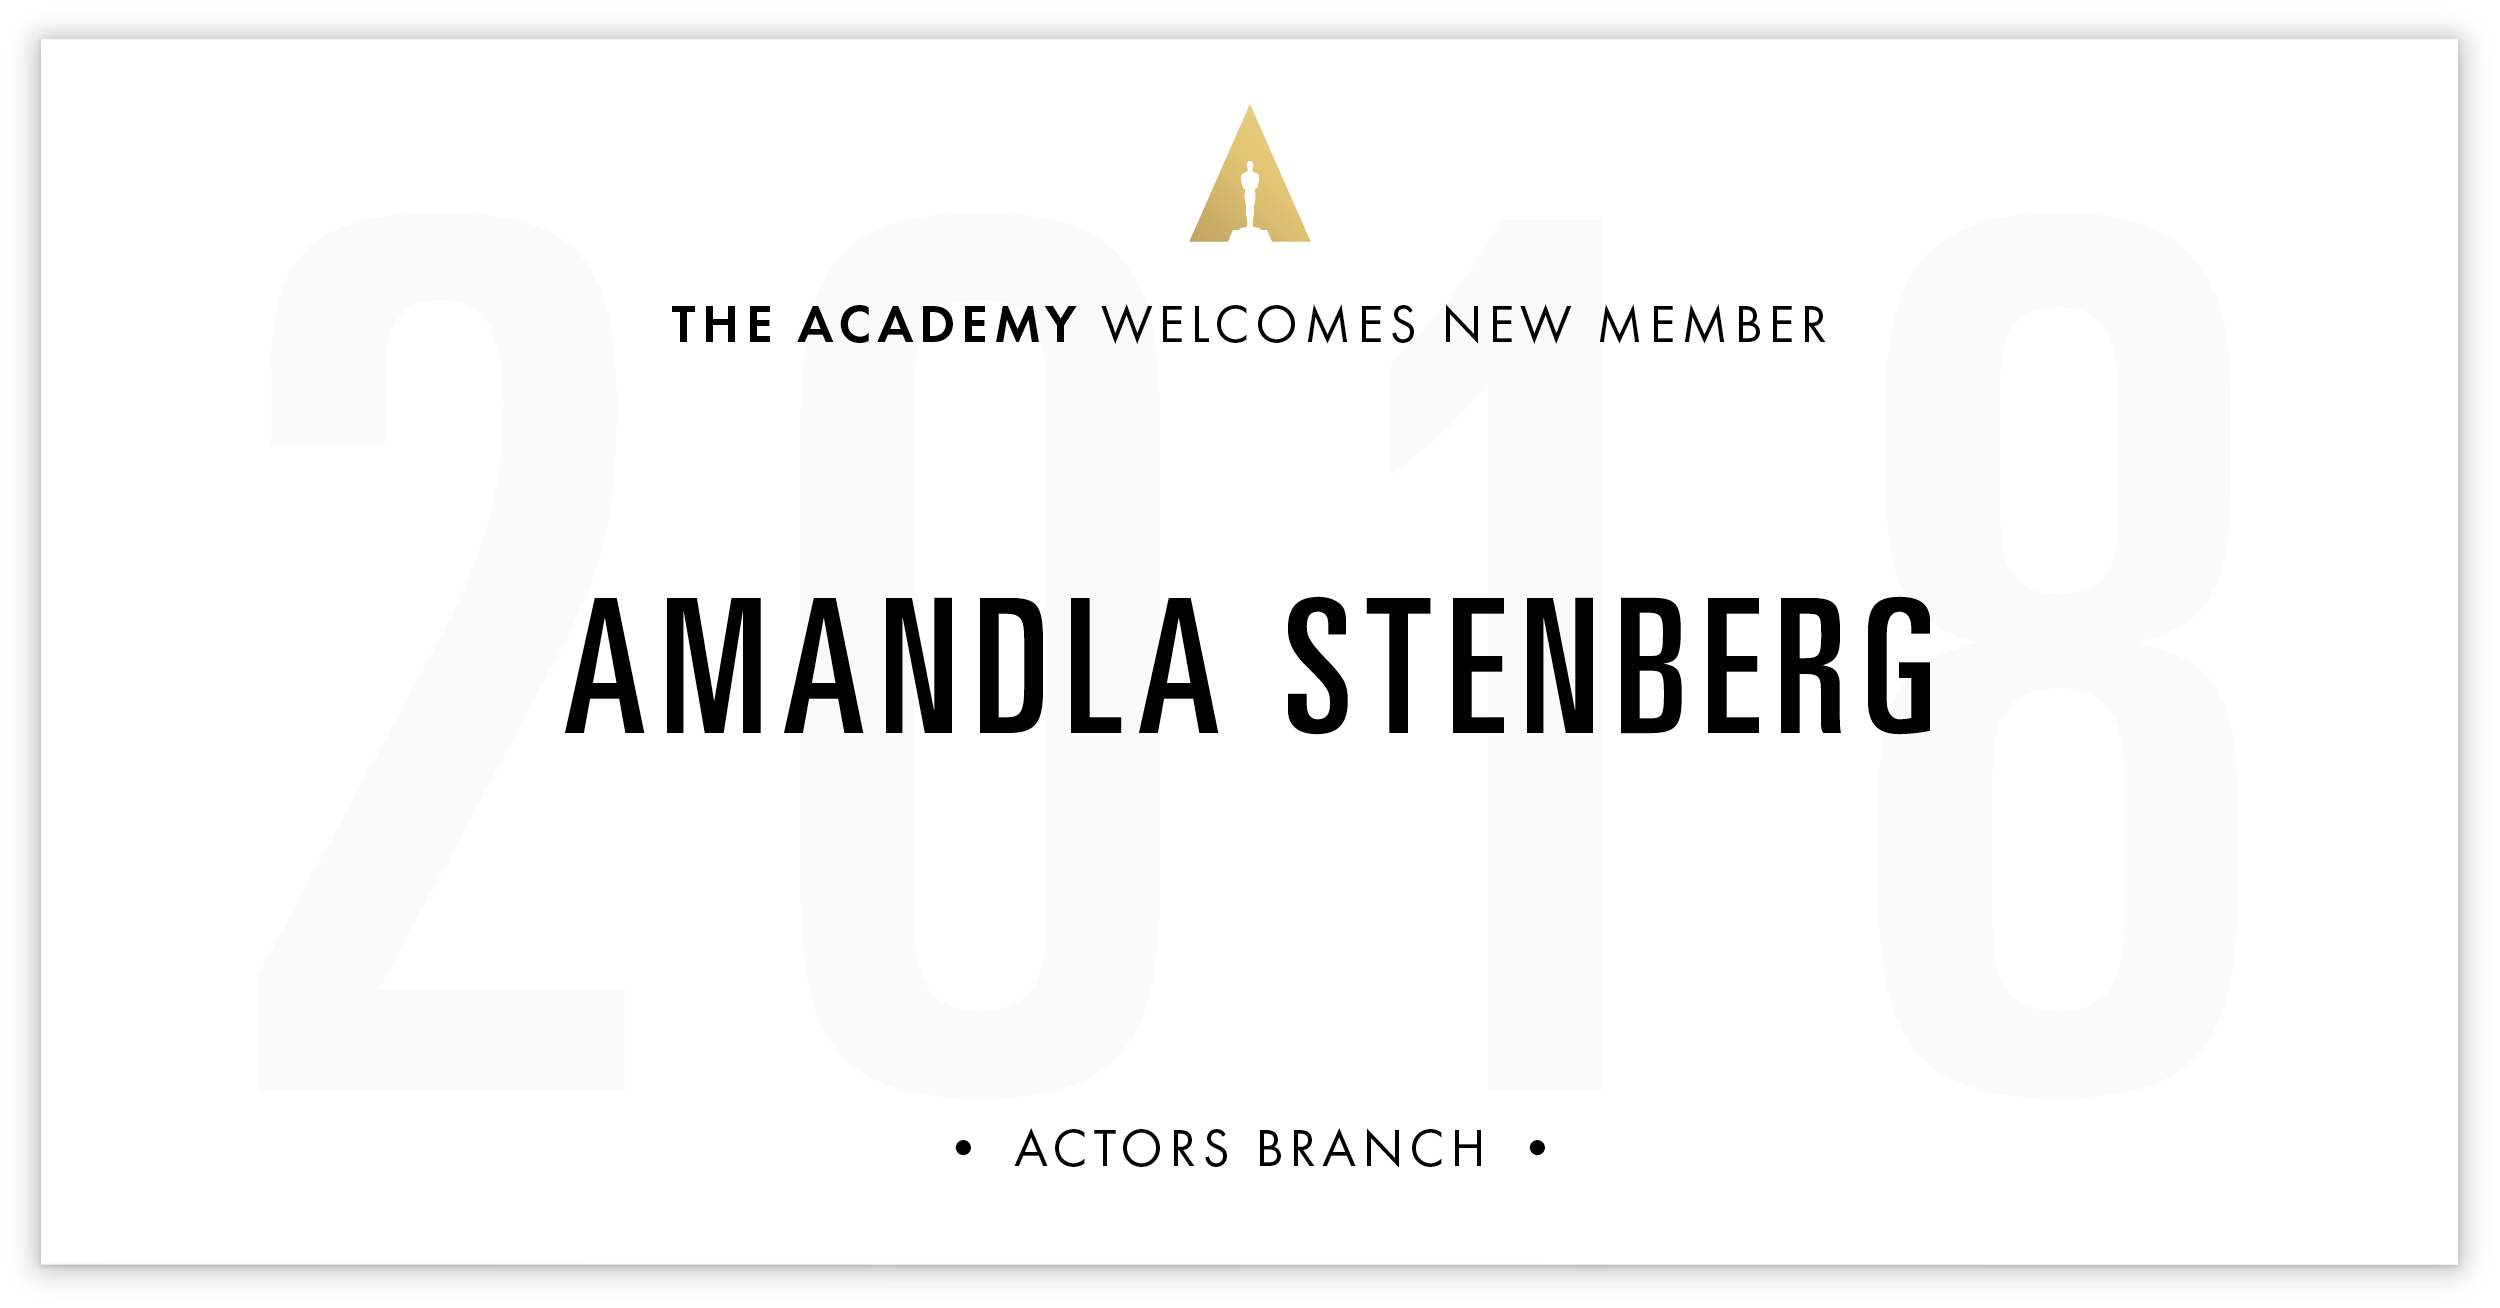 Amandla Stenberg is invited!